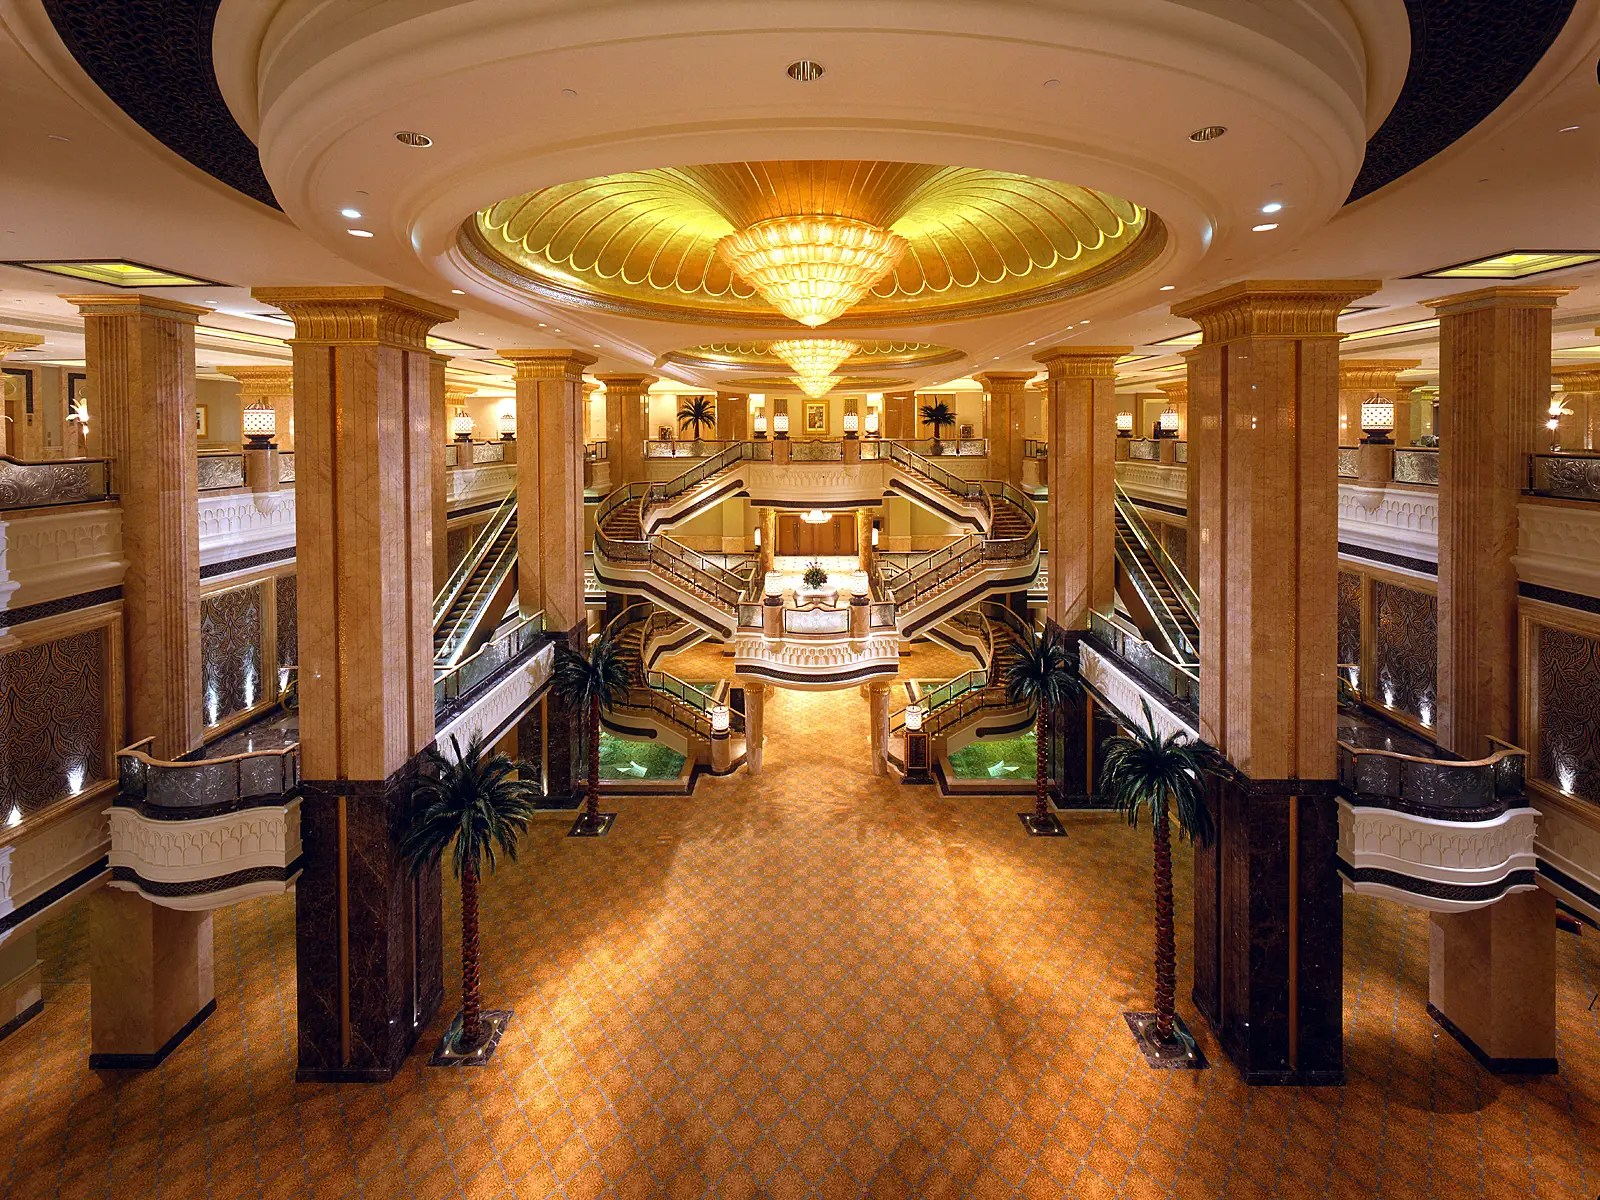 There are over 394 rooms and suites, ranging from 592 square feet to 7,319 square feet.